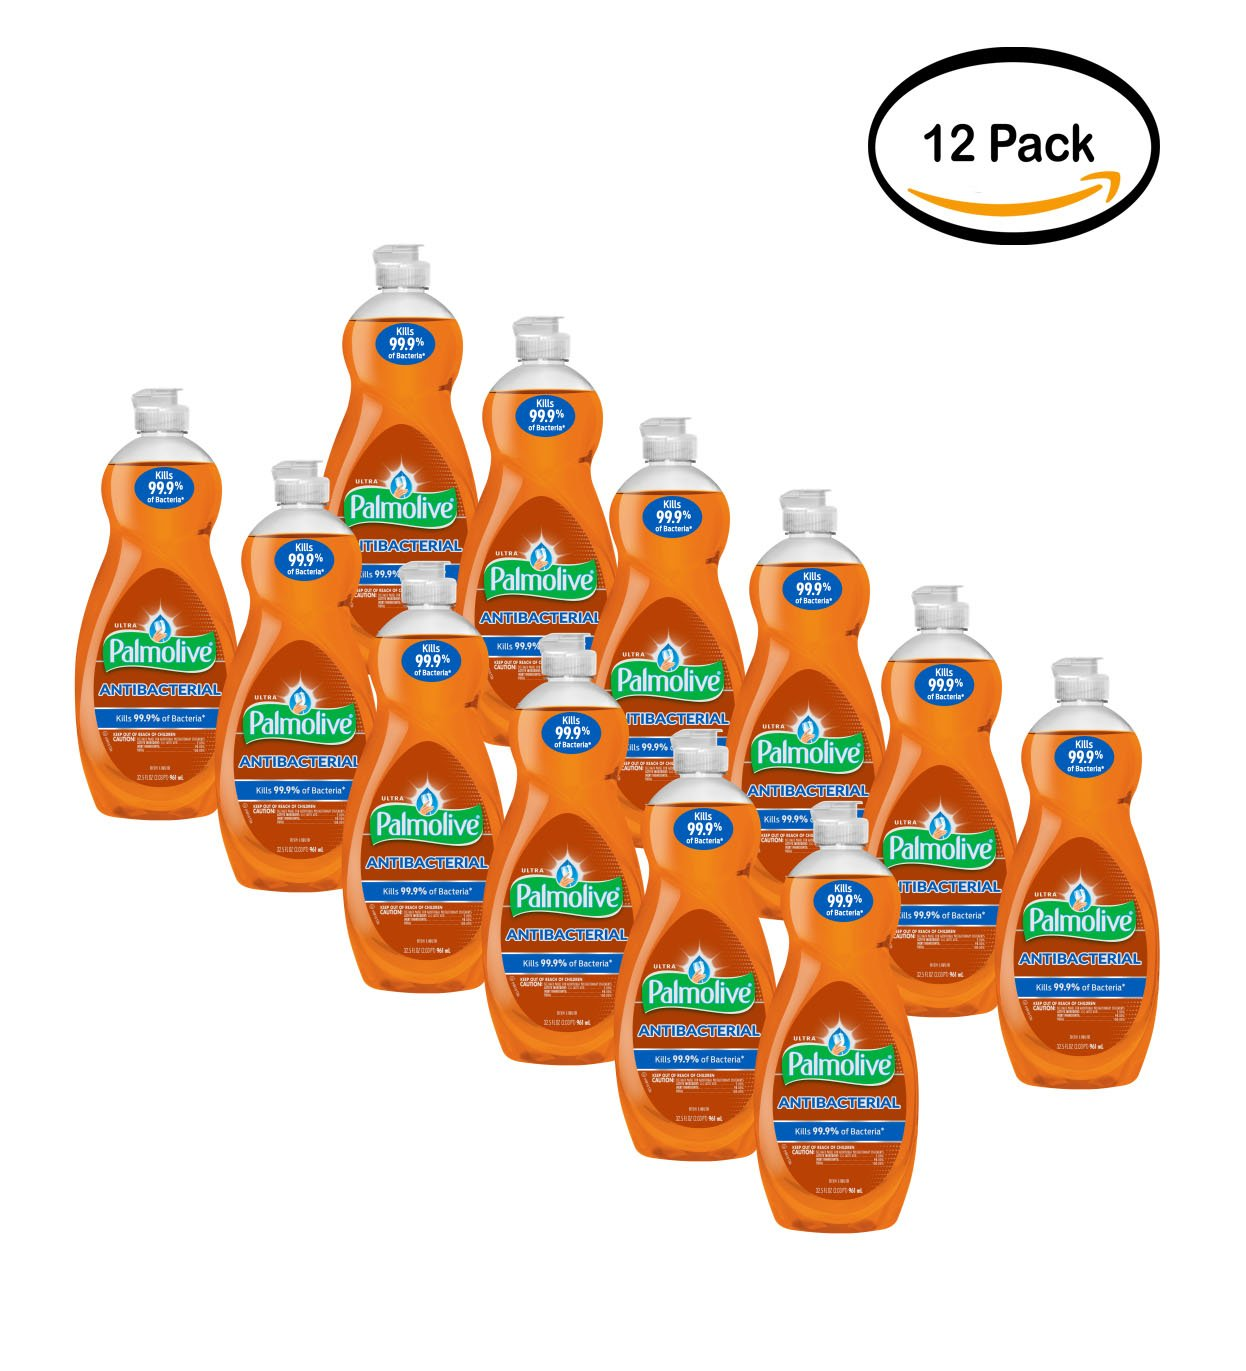 PACK OF 12 - Palmolive Ultra Anti-Bacterial Dish Soap, Orange, 32.5 Oz